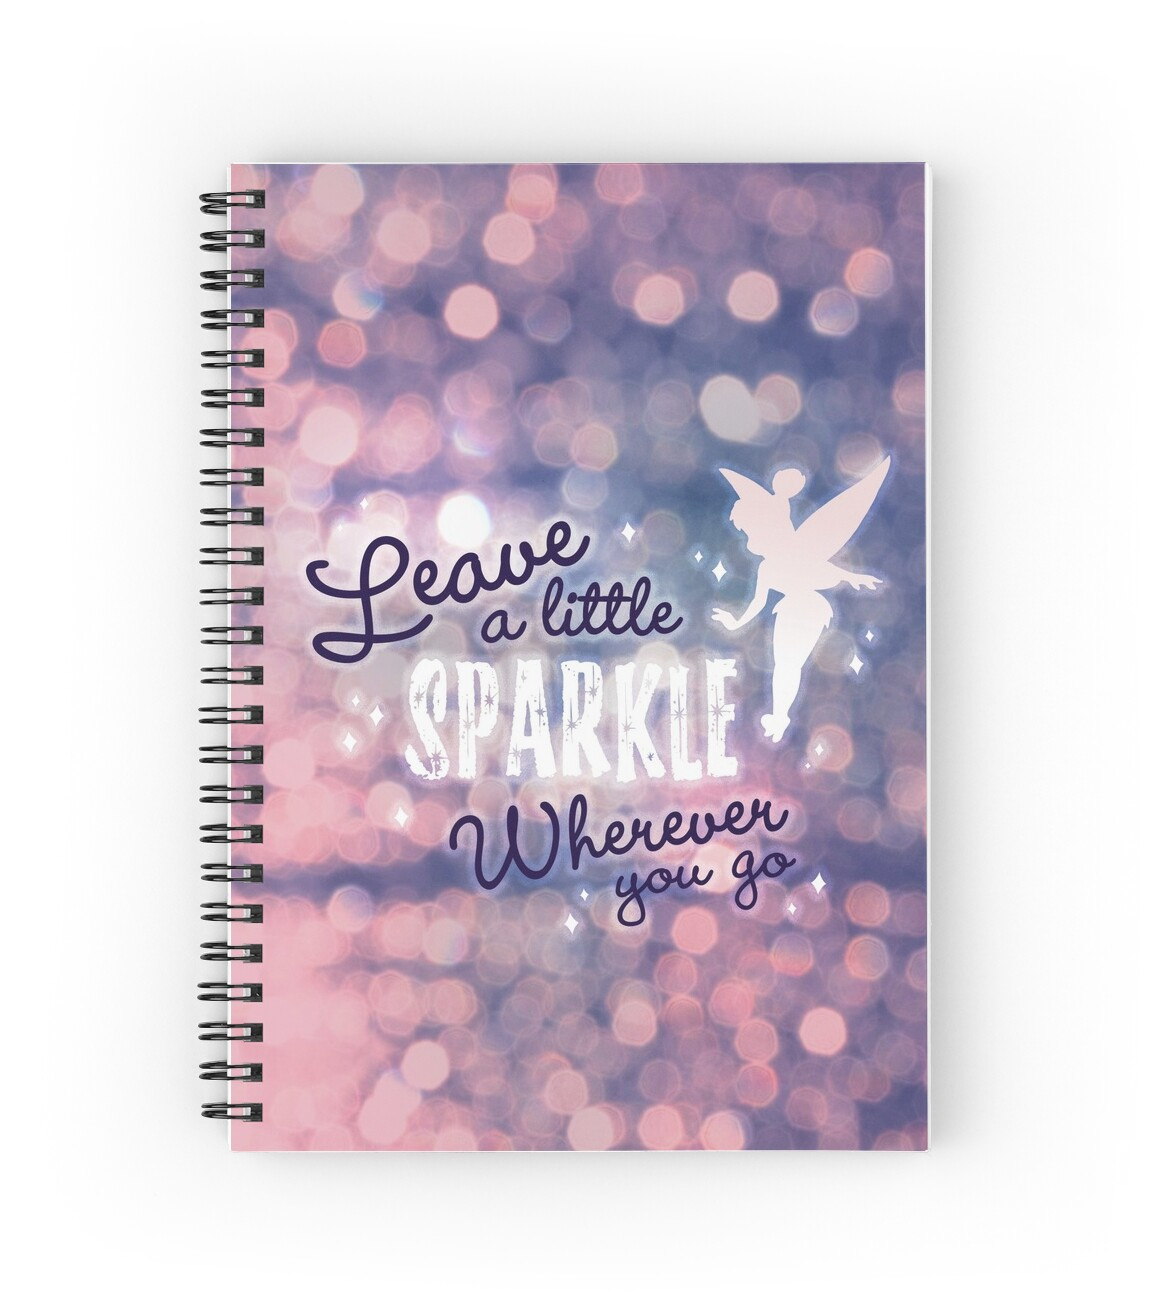 Leave A Little Sparkle Wherever You Go Fb Cover